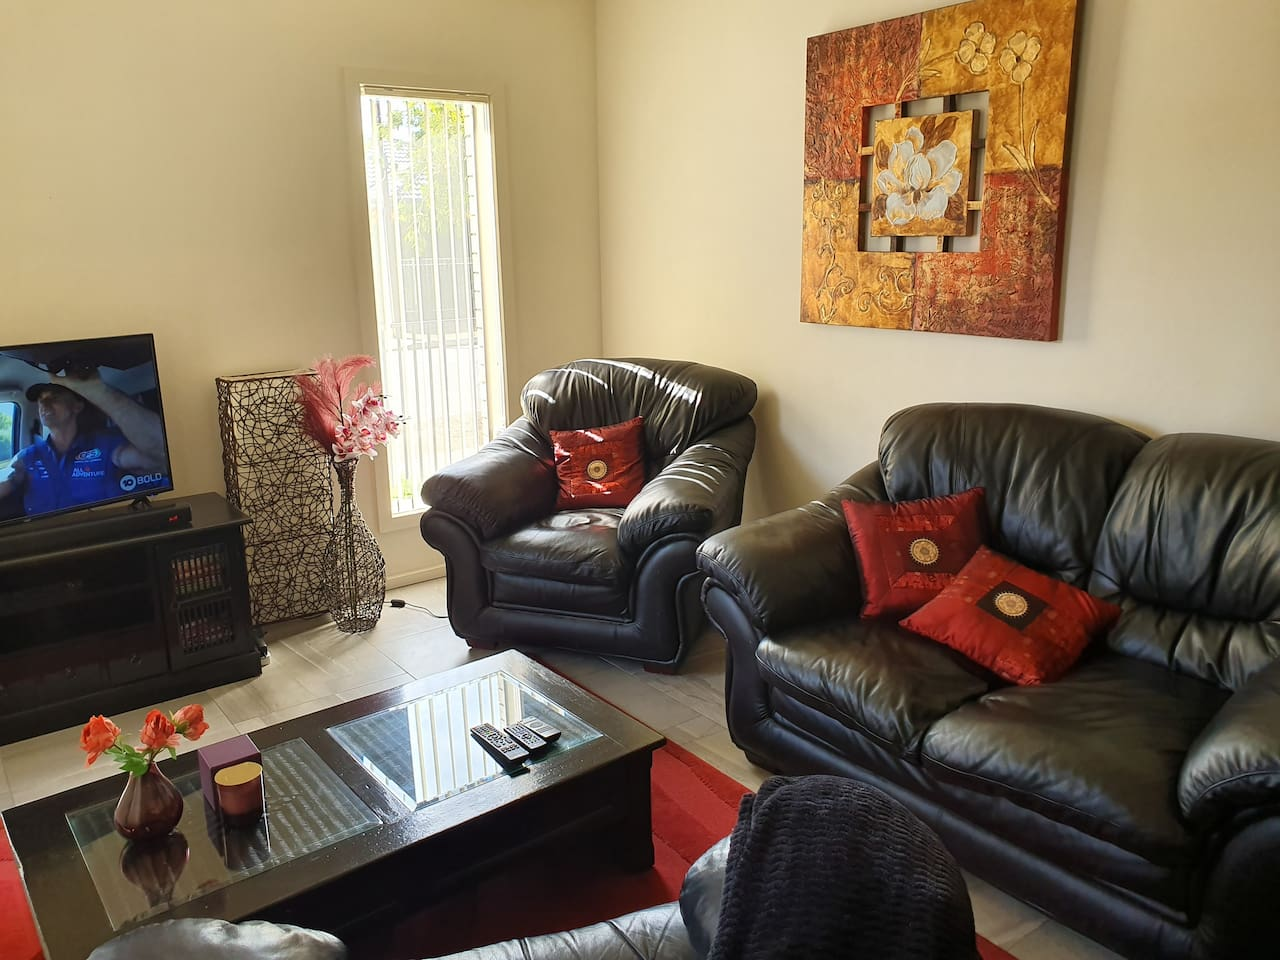 Formal lounge with recliner, smart TV, audio/DVD player and DVDs for children, free wifi with unlimited data to chill after a busy day